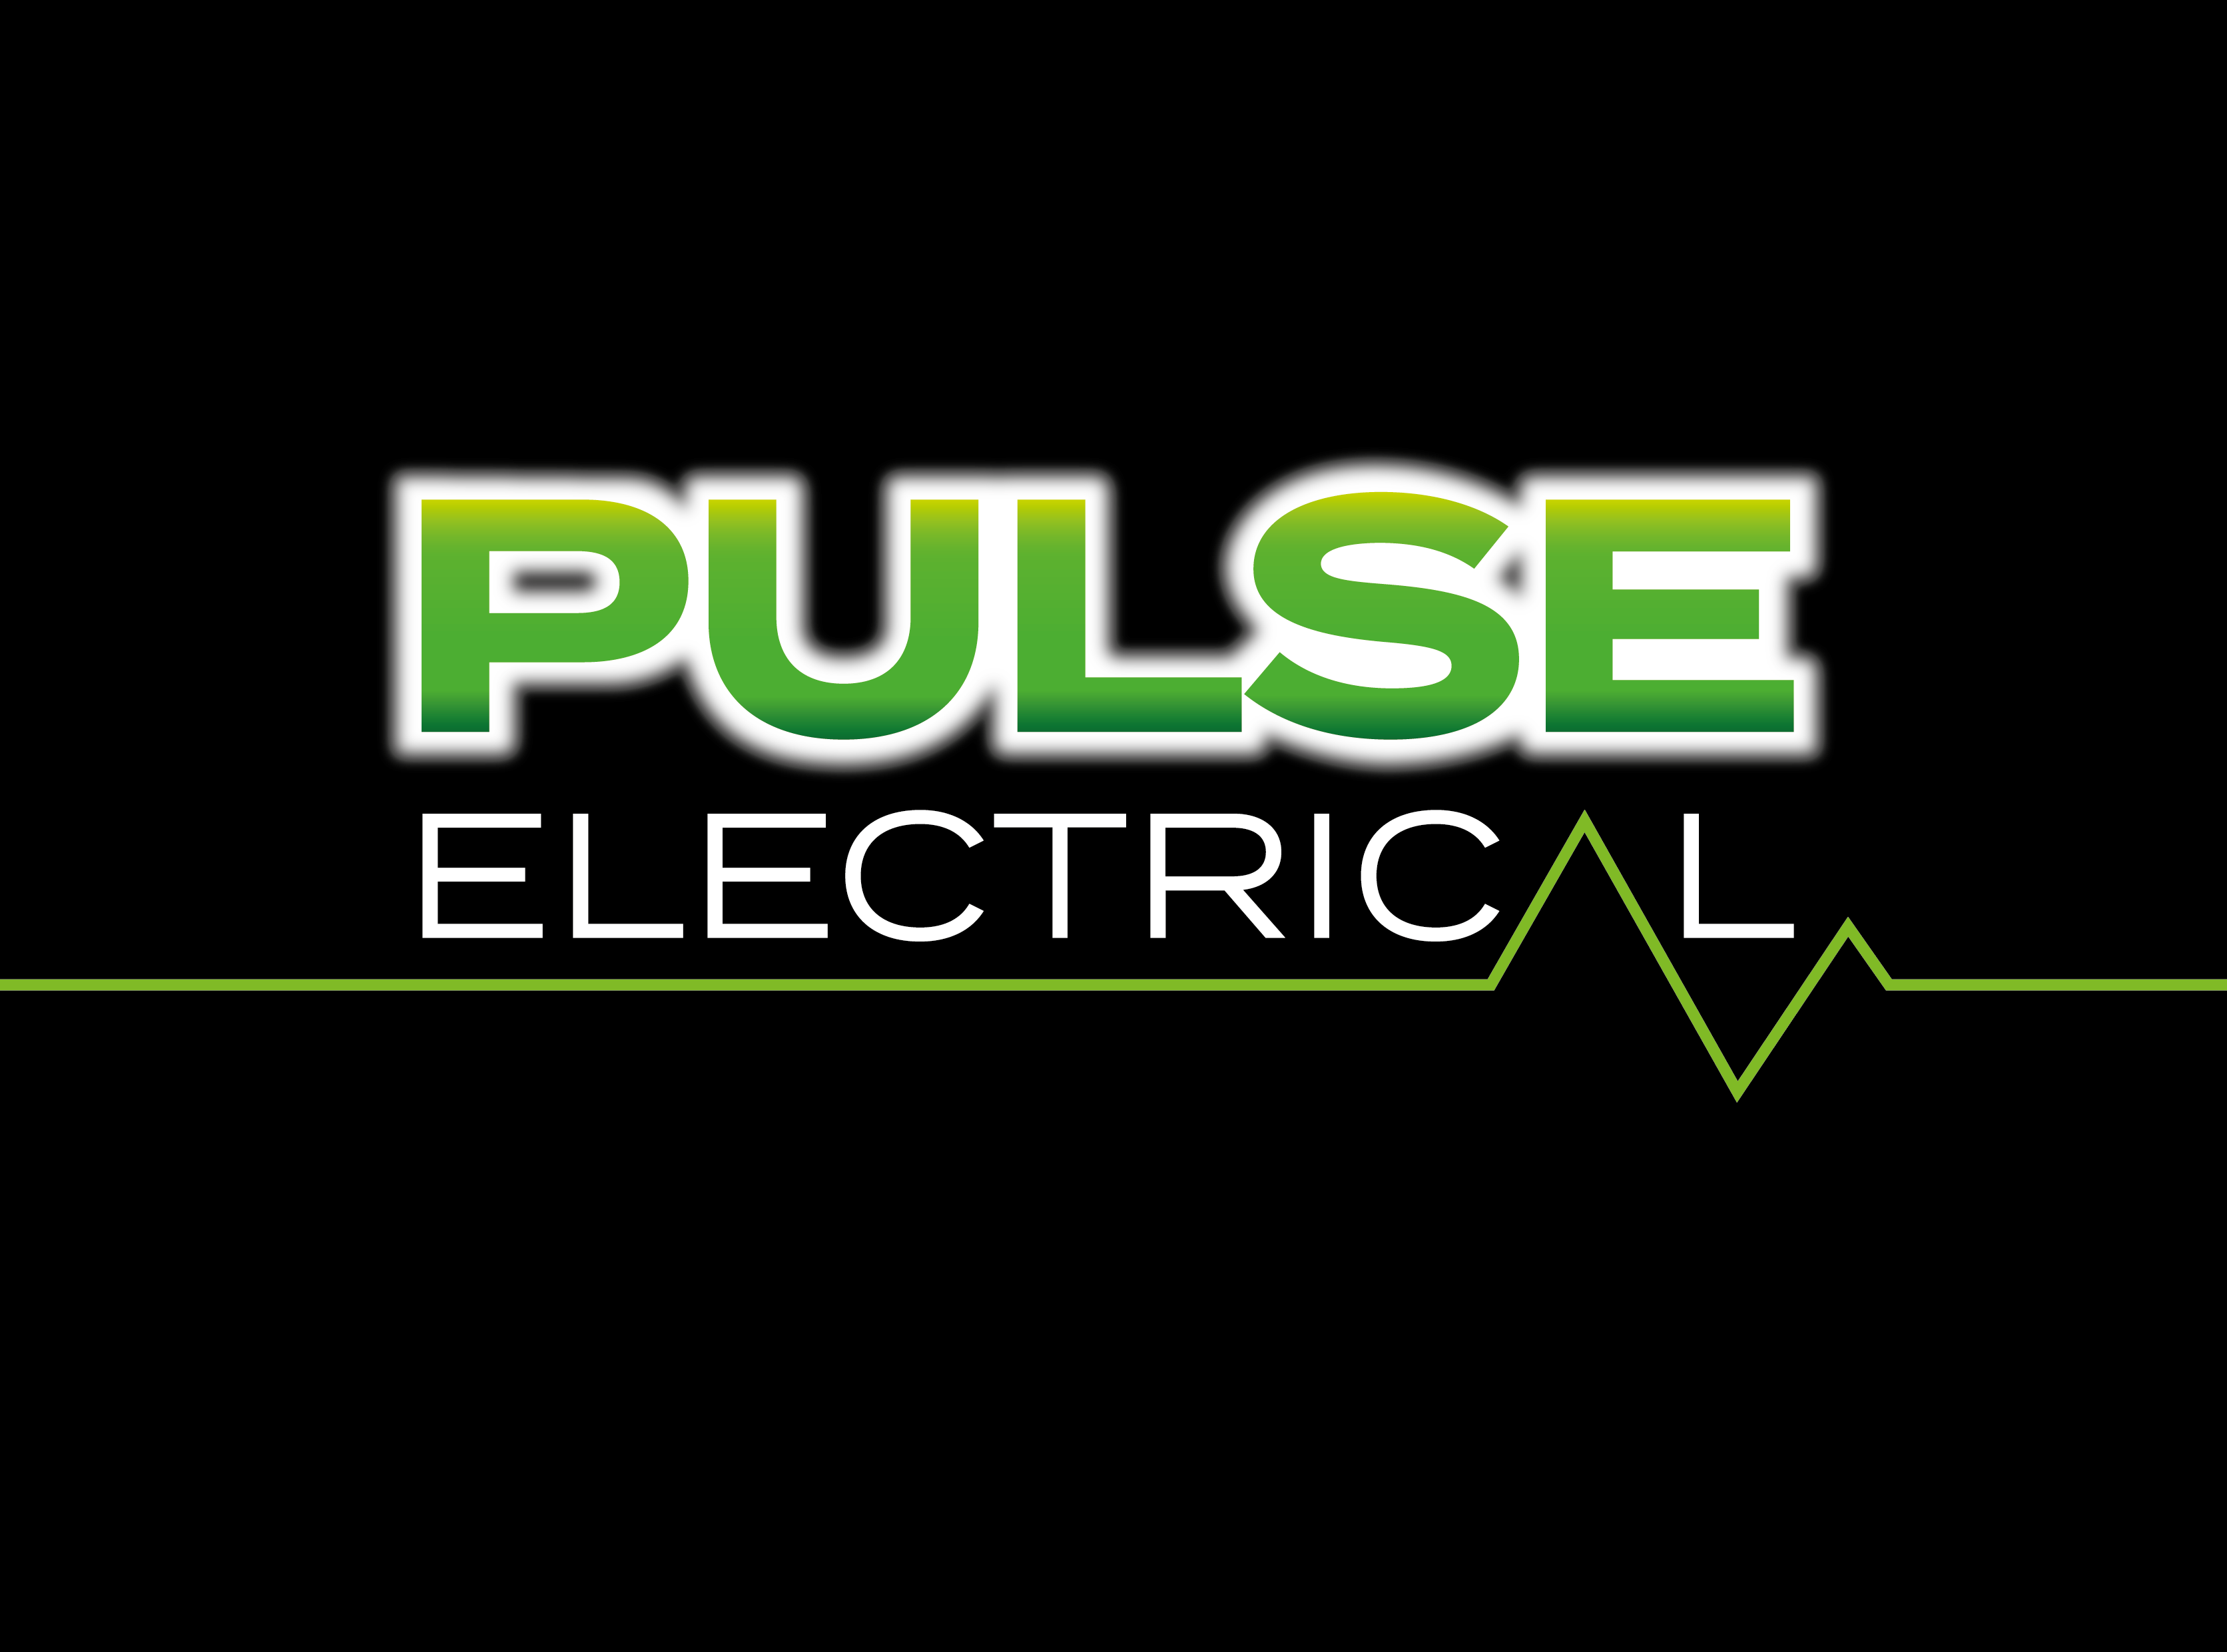 PULSE Electrical, Identity/Logo